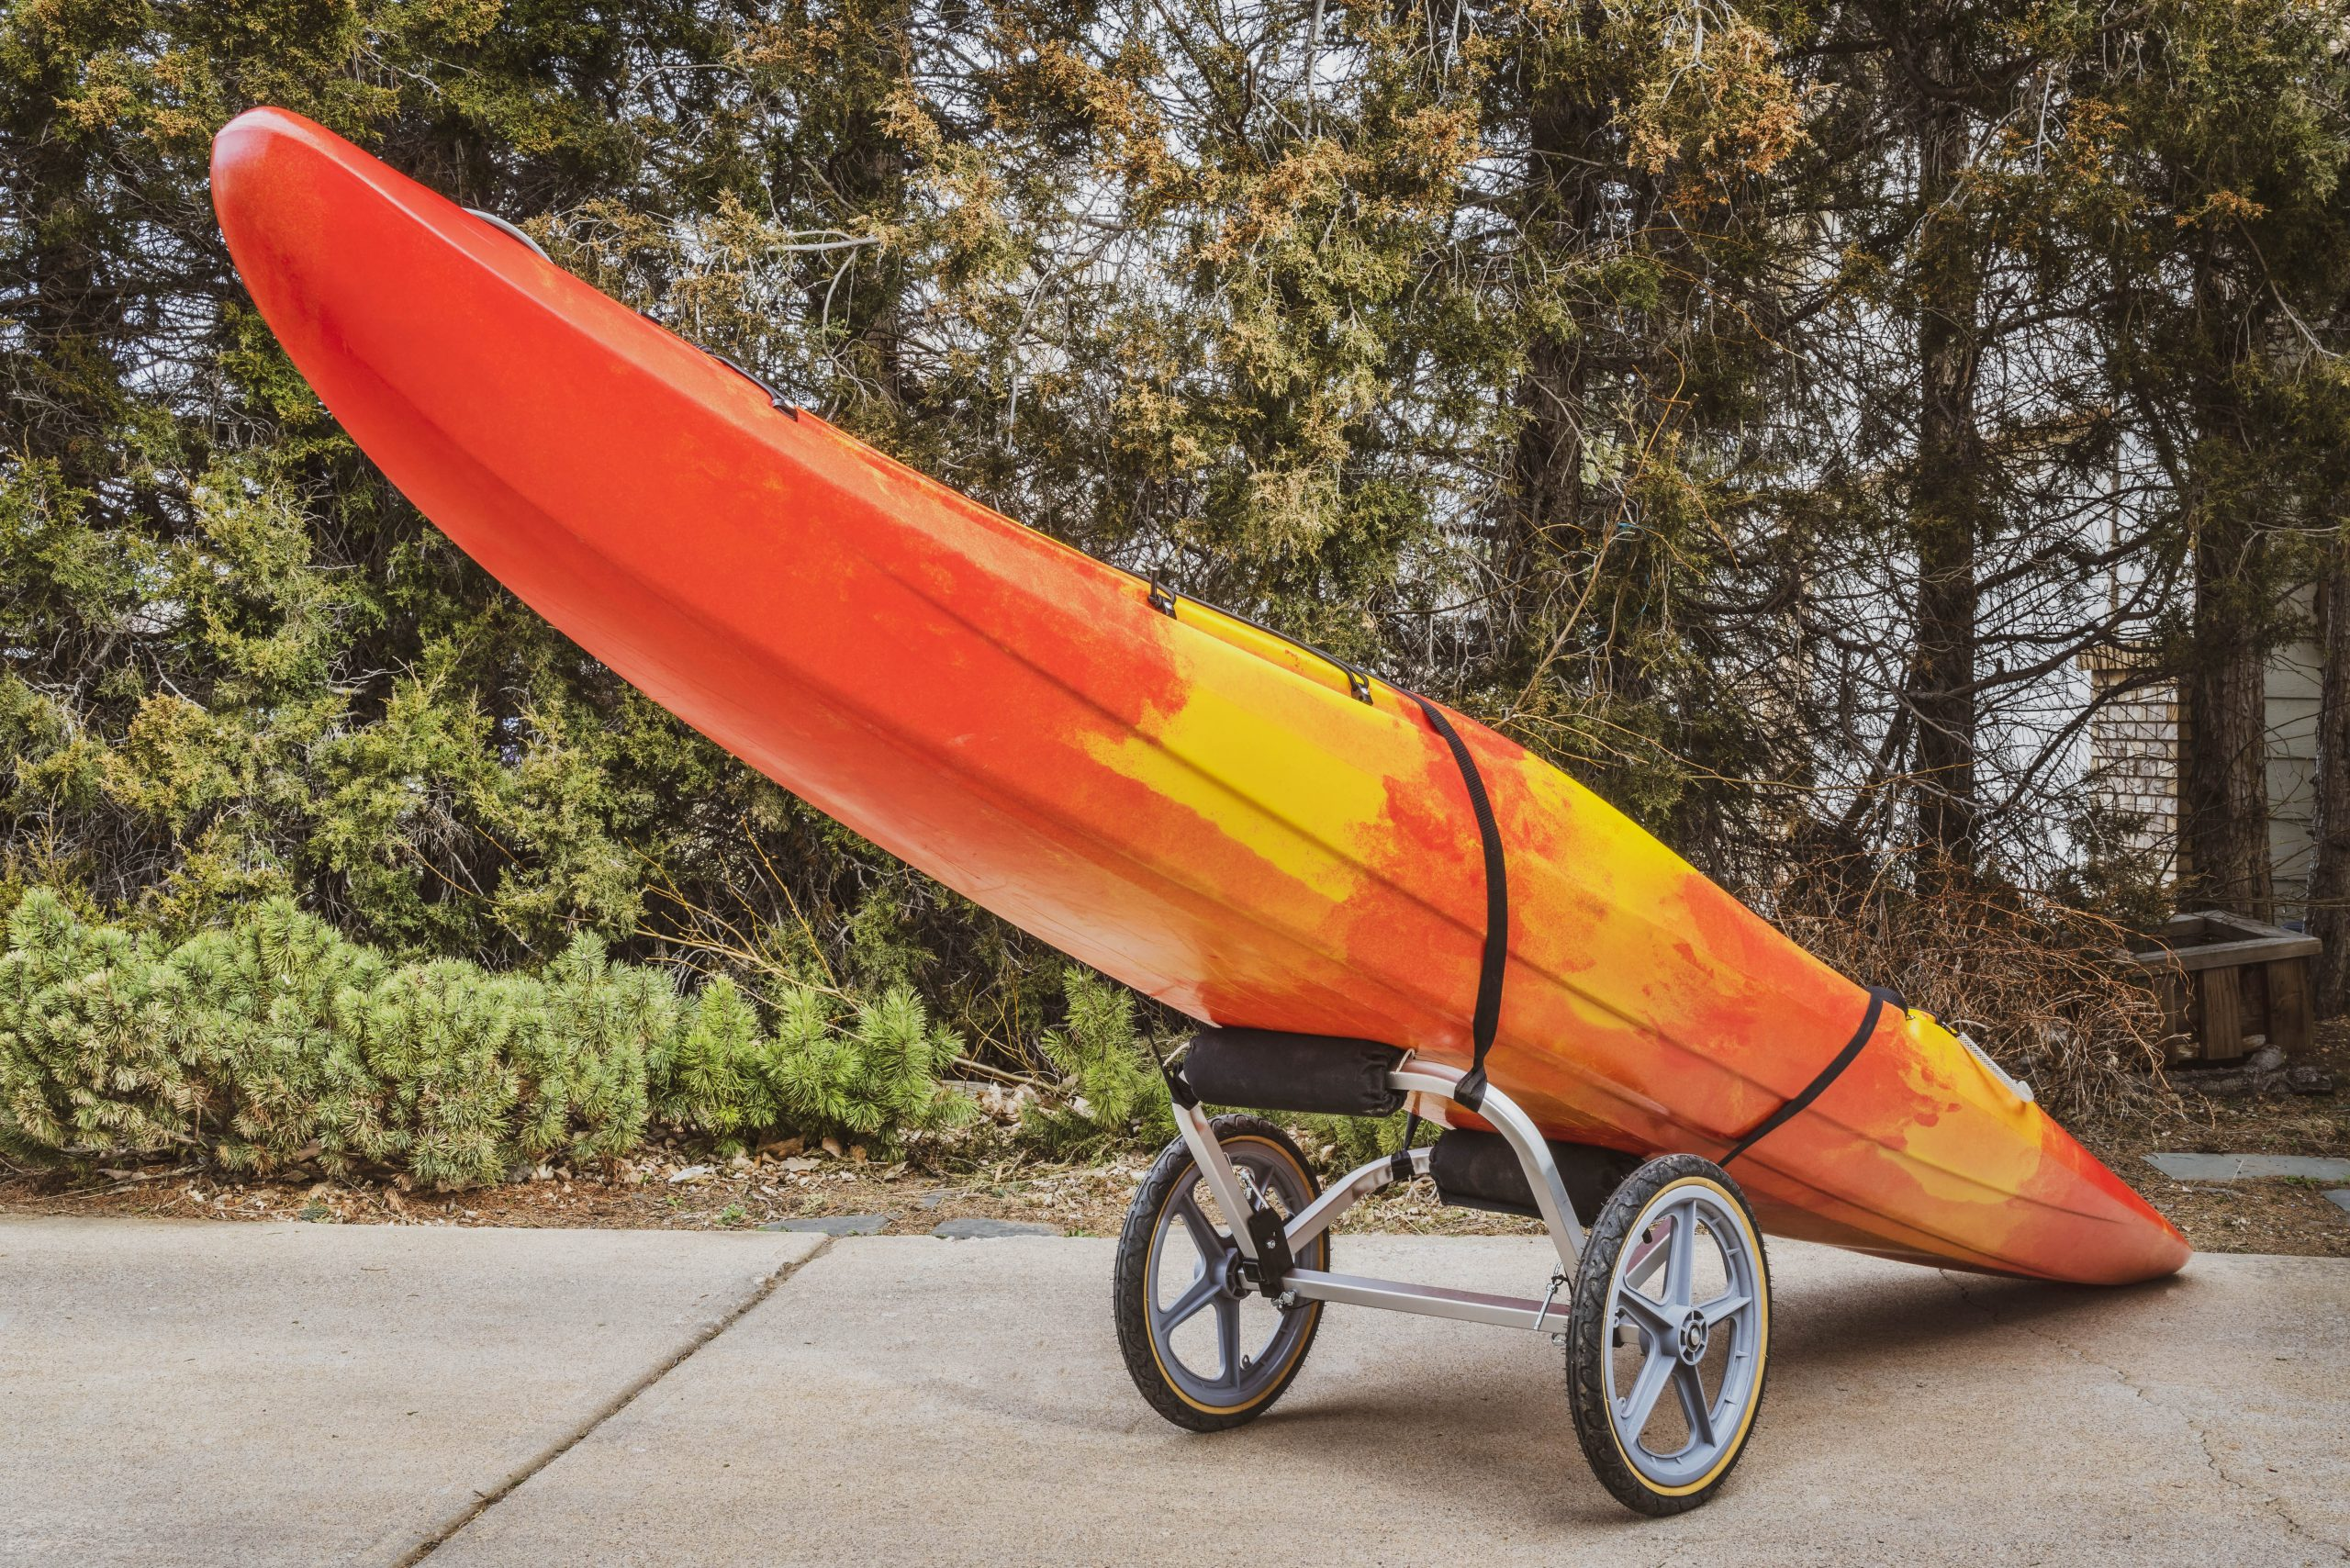 Best kayak cart for different terrains: 5 reviews and buying guide